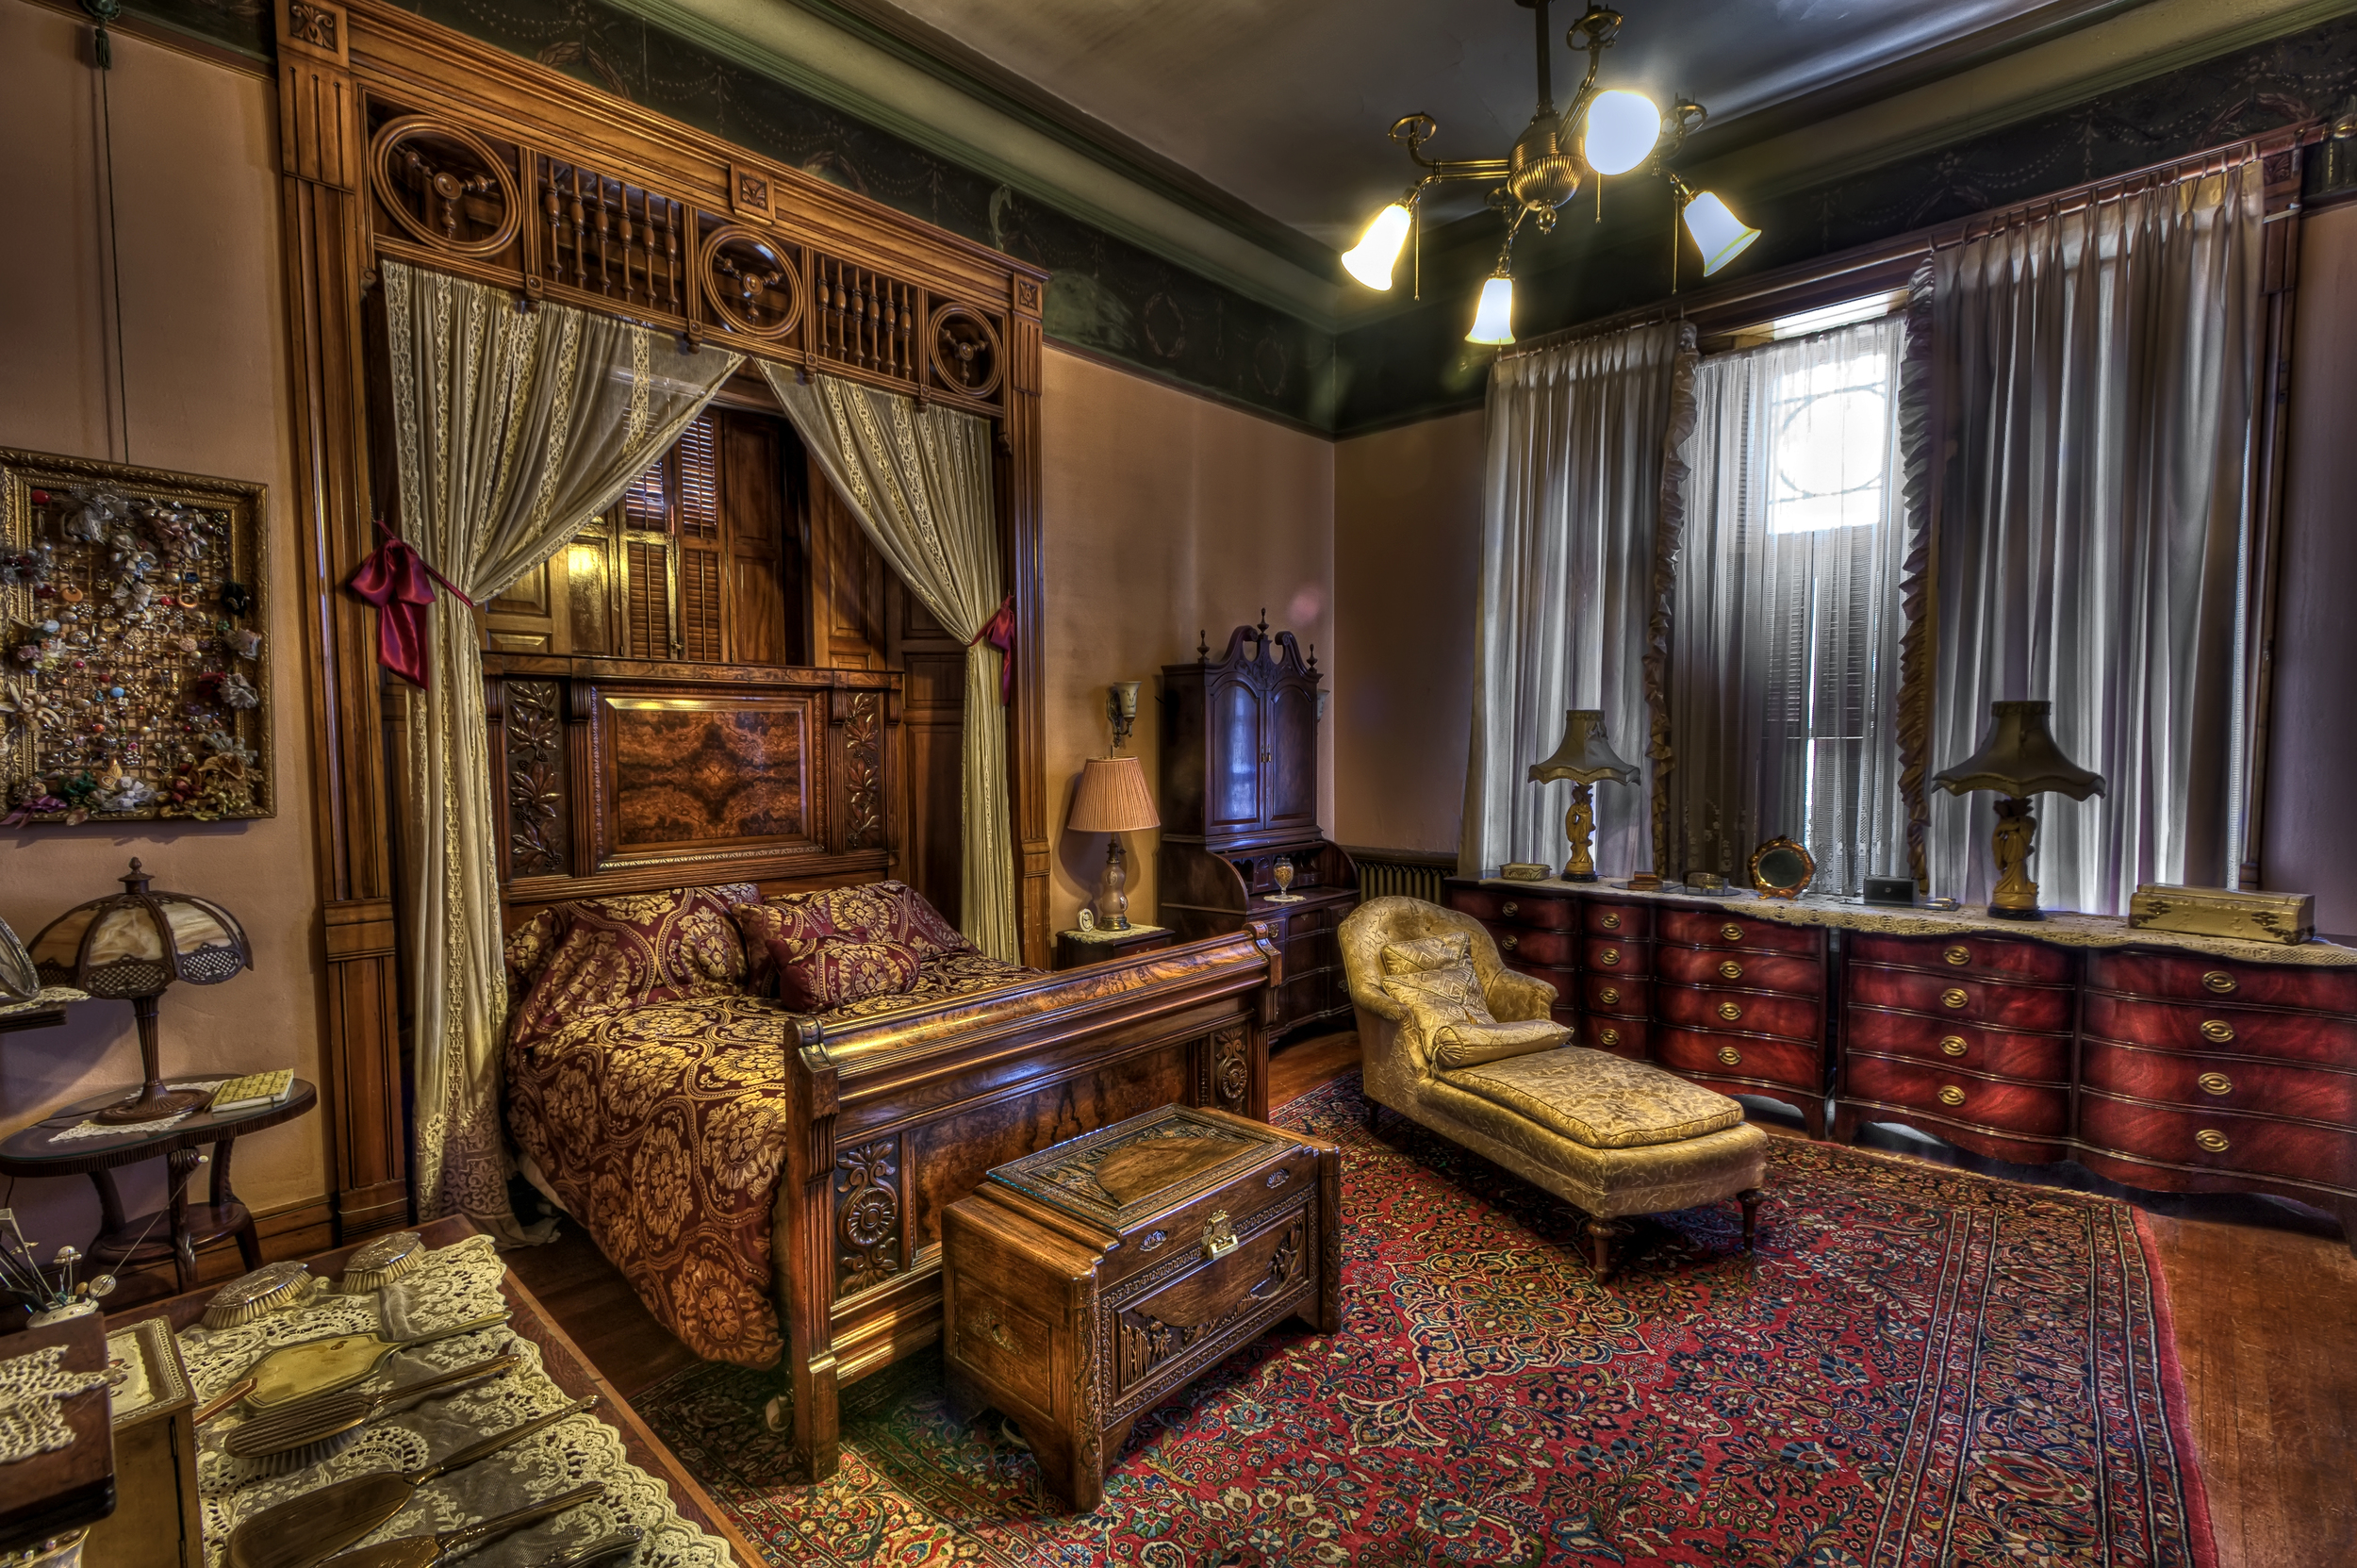 Master bedroom, Copper King Mansion, the W.A. Clark home in Butte, Montana. c. Daniel Hagerman. Prints for sale at http://fineartamerica.com/art/all/copper+king+mansion/all.